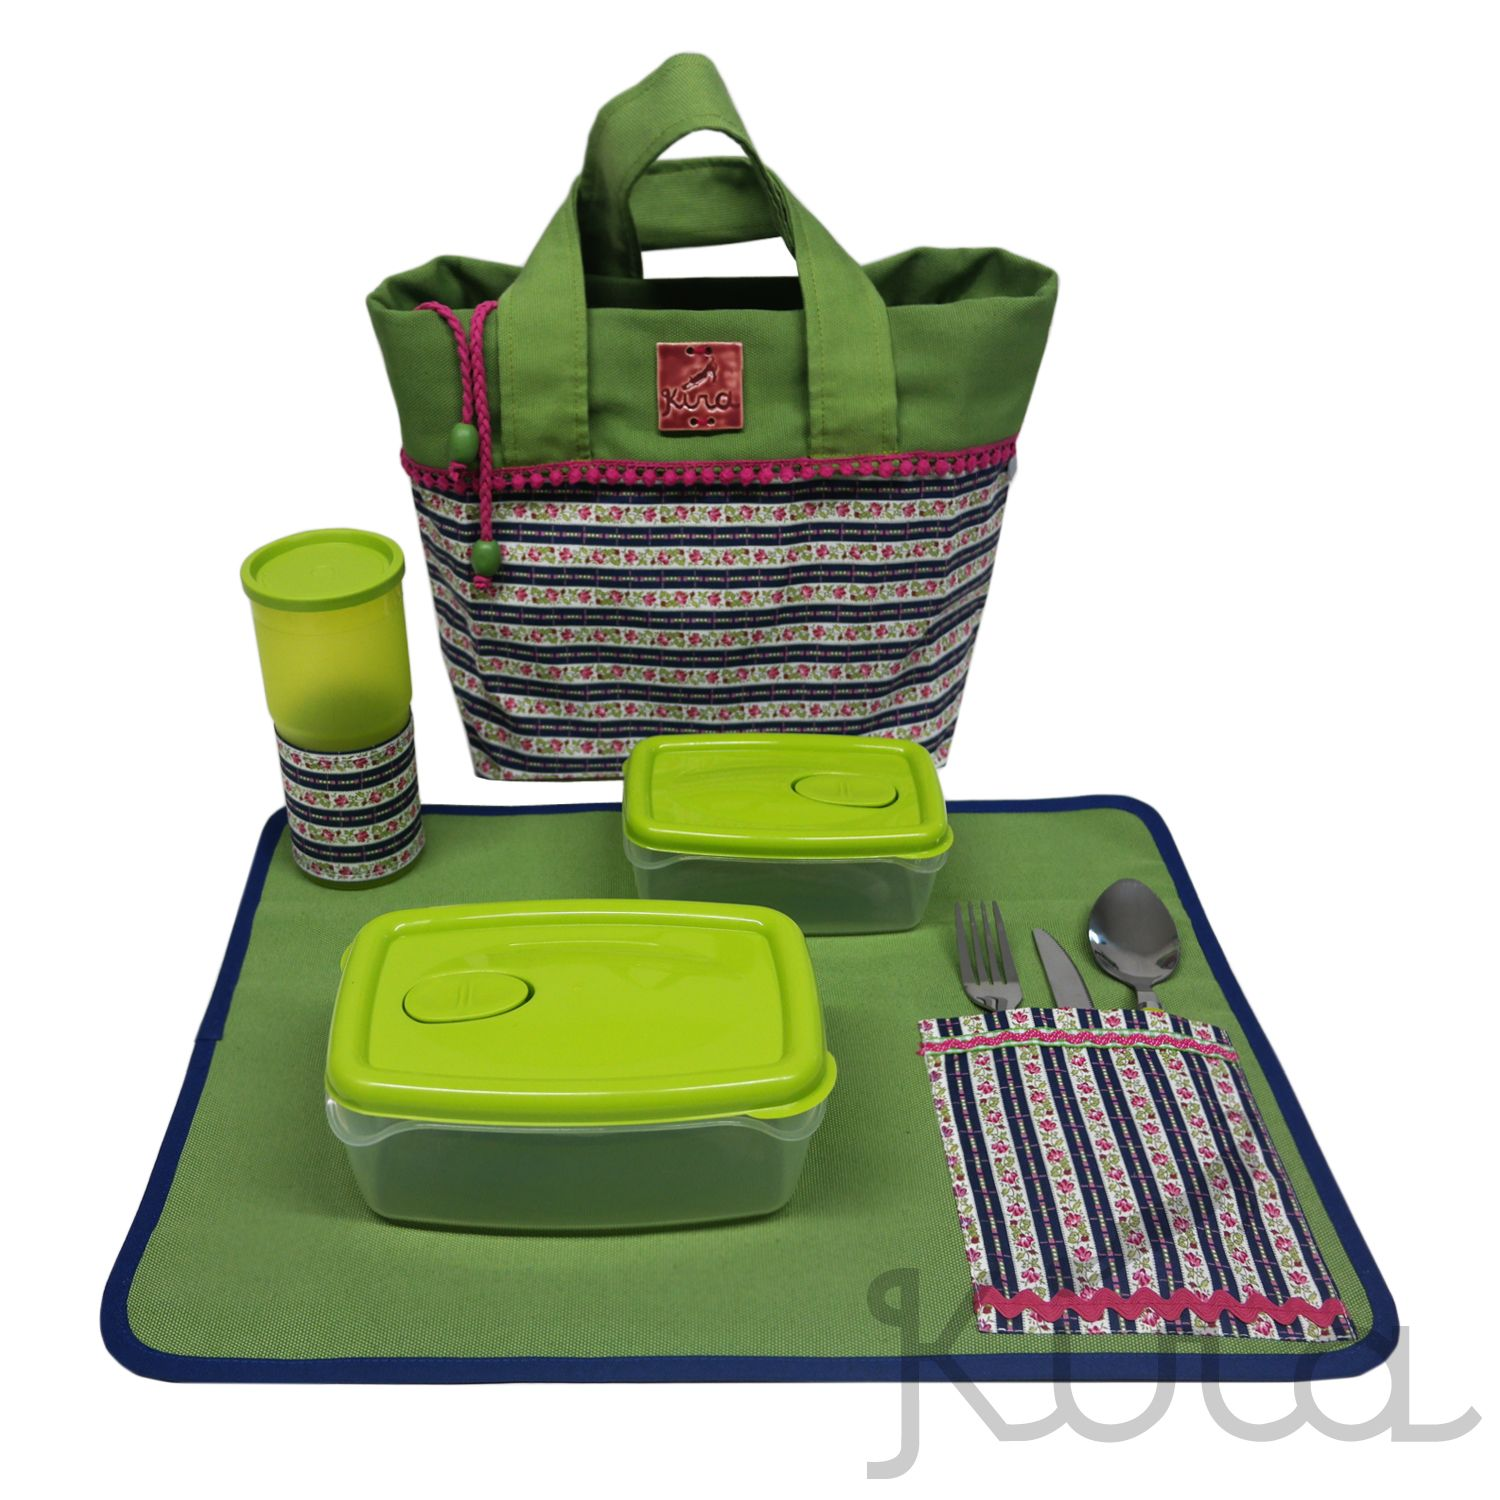 Lancheira Termica -Termic Lunch Bag https://www.facebook.com ...